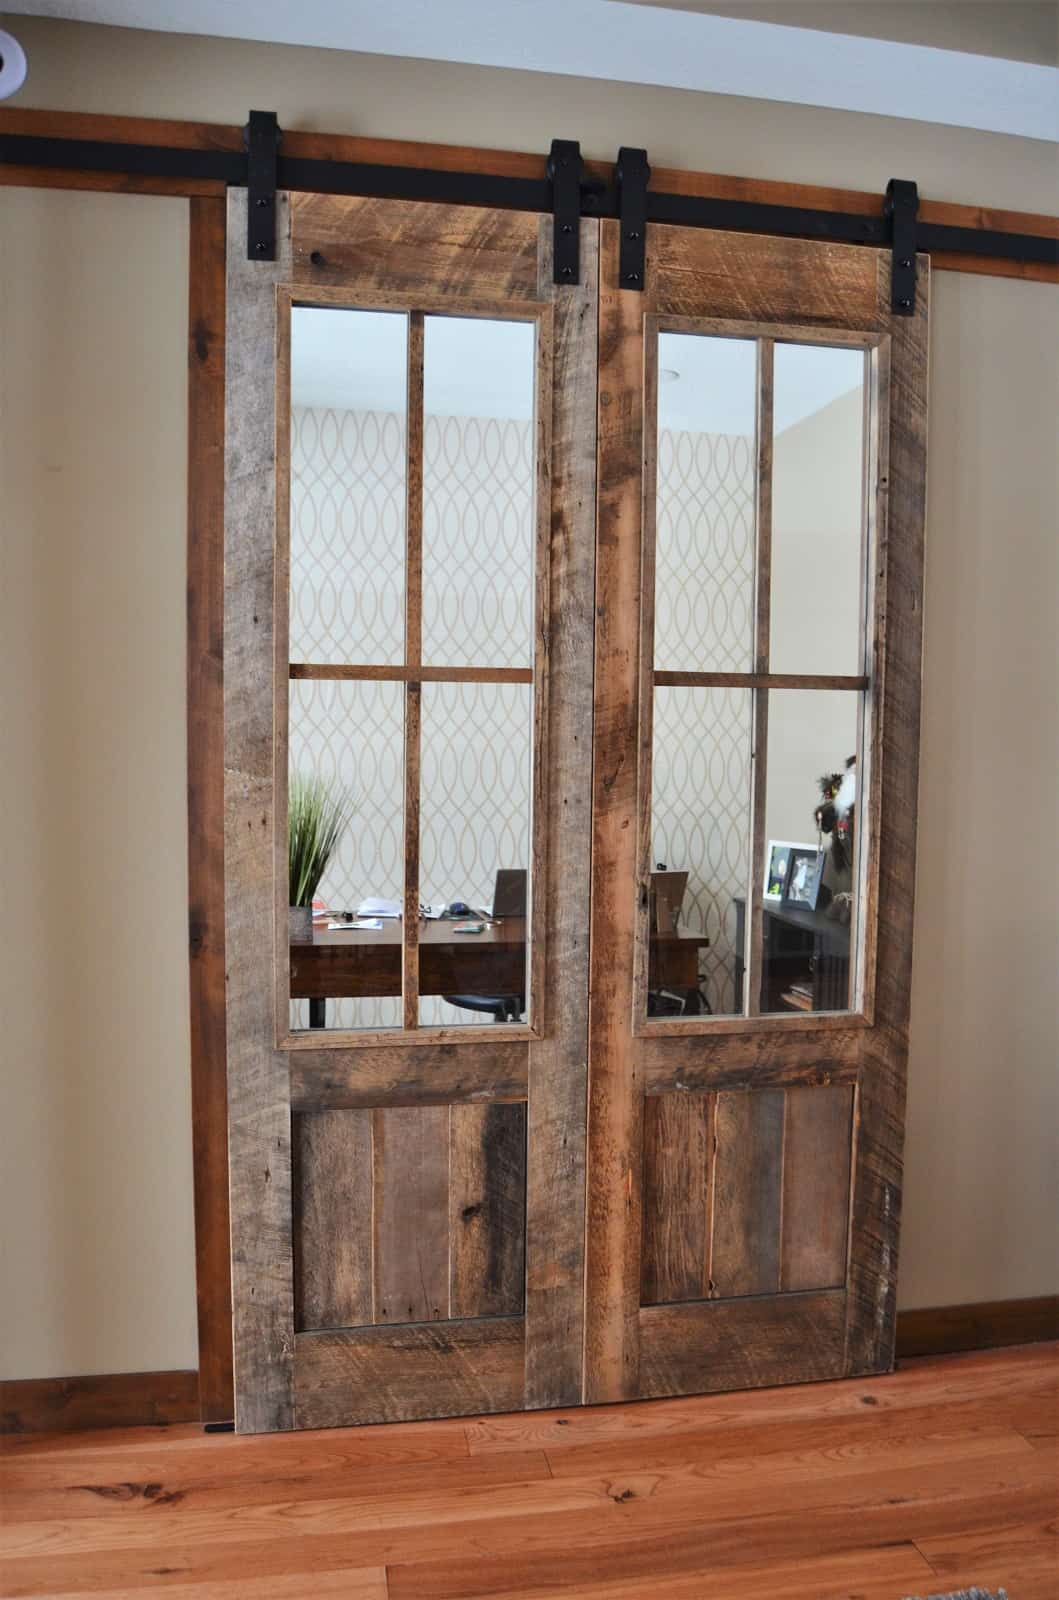 Reclaim Pine Barn Track Interior Doors with Glass..